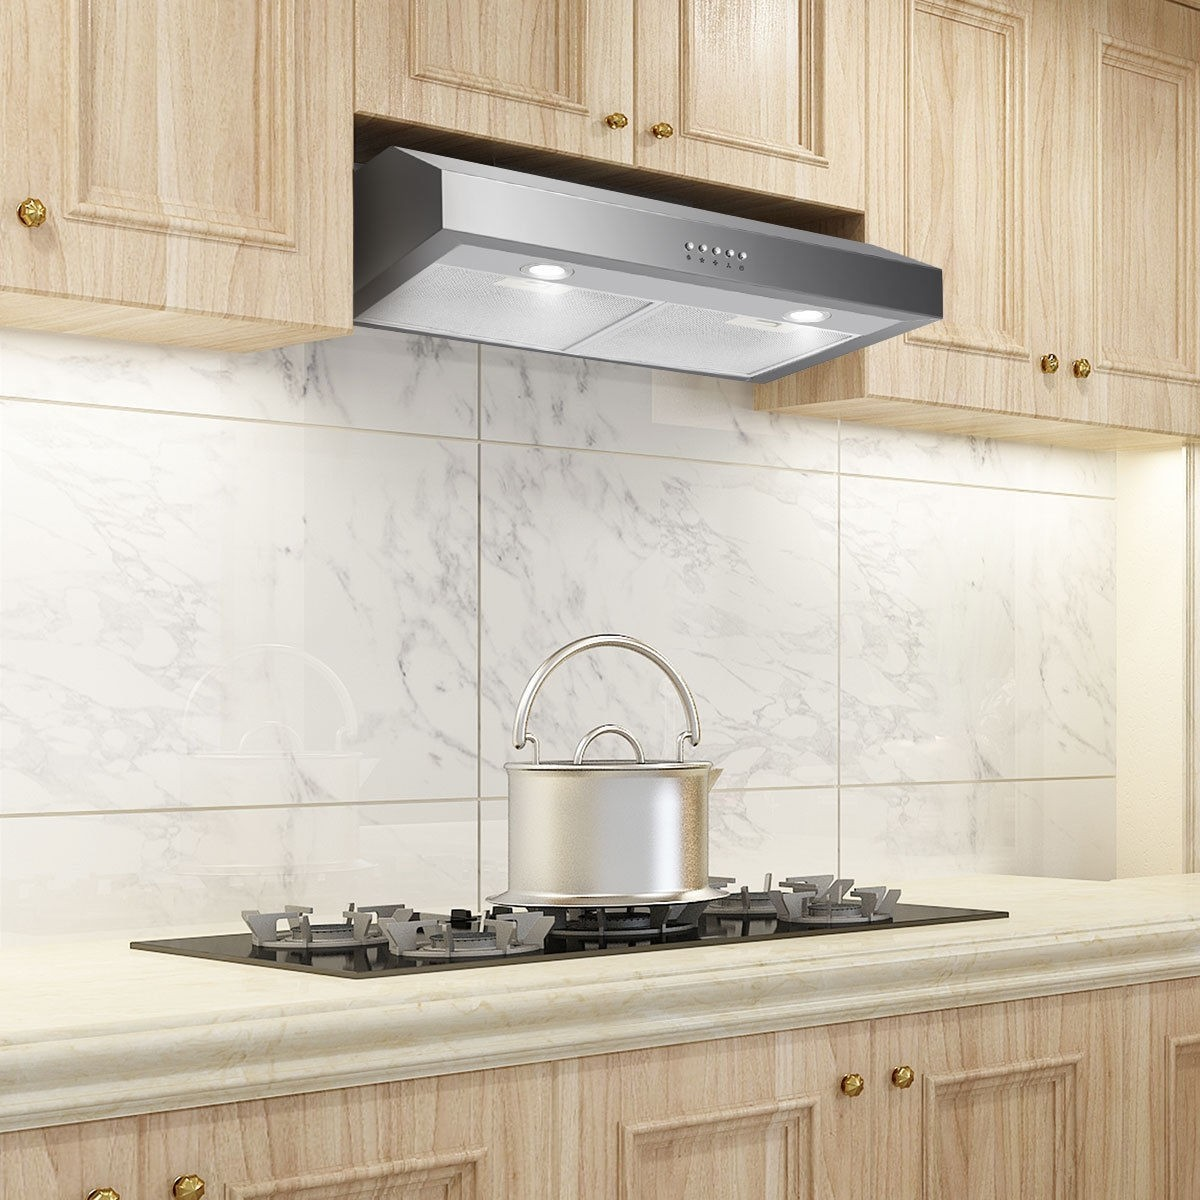 30 Kitchen Range Hood Range Hood Kitchen Exhaust